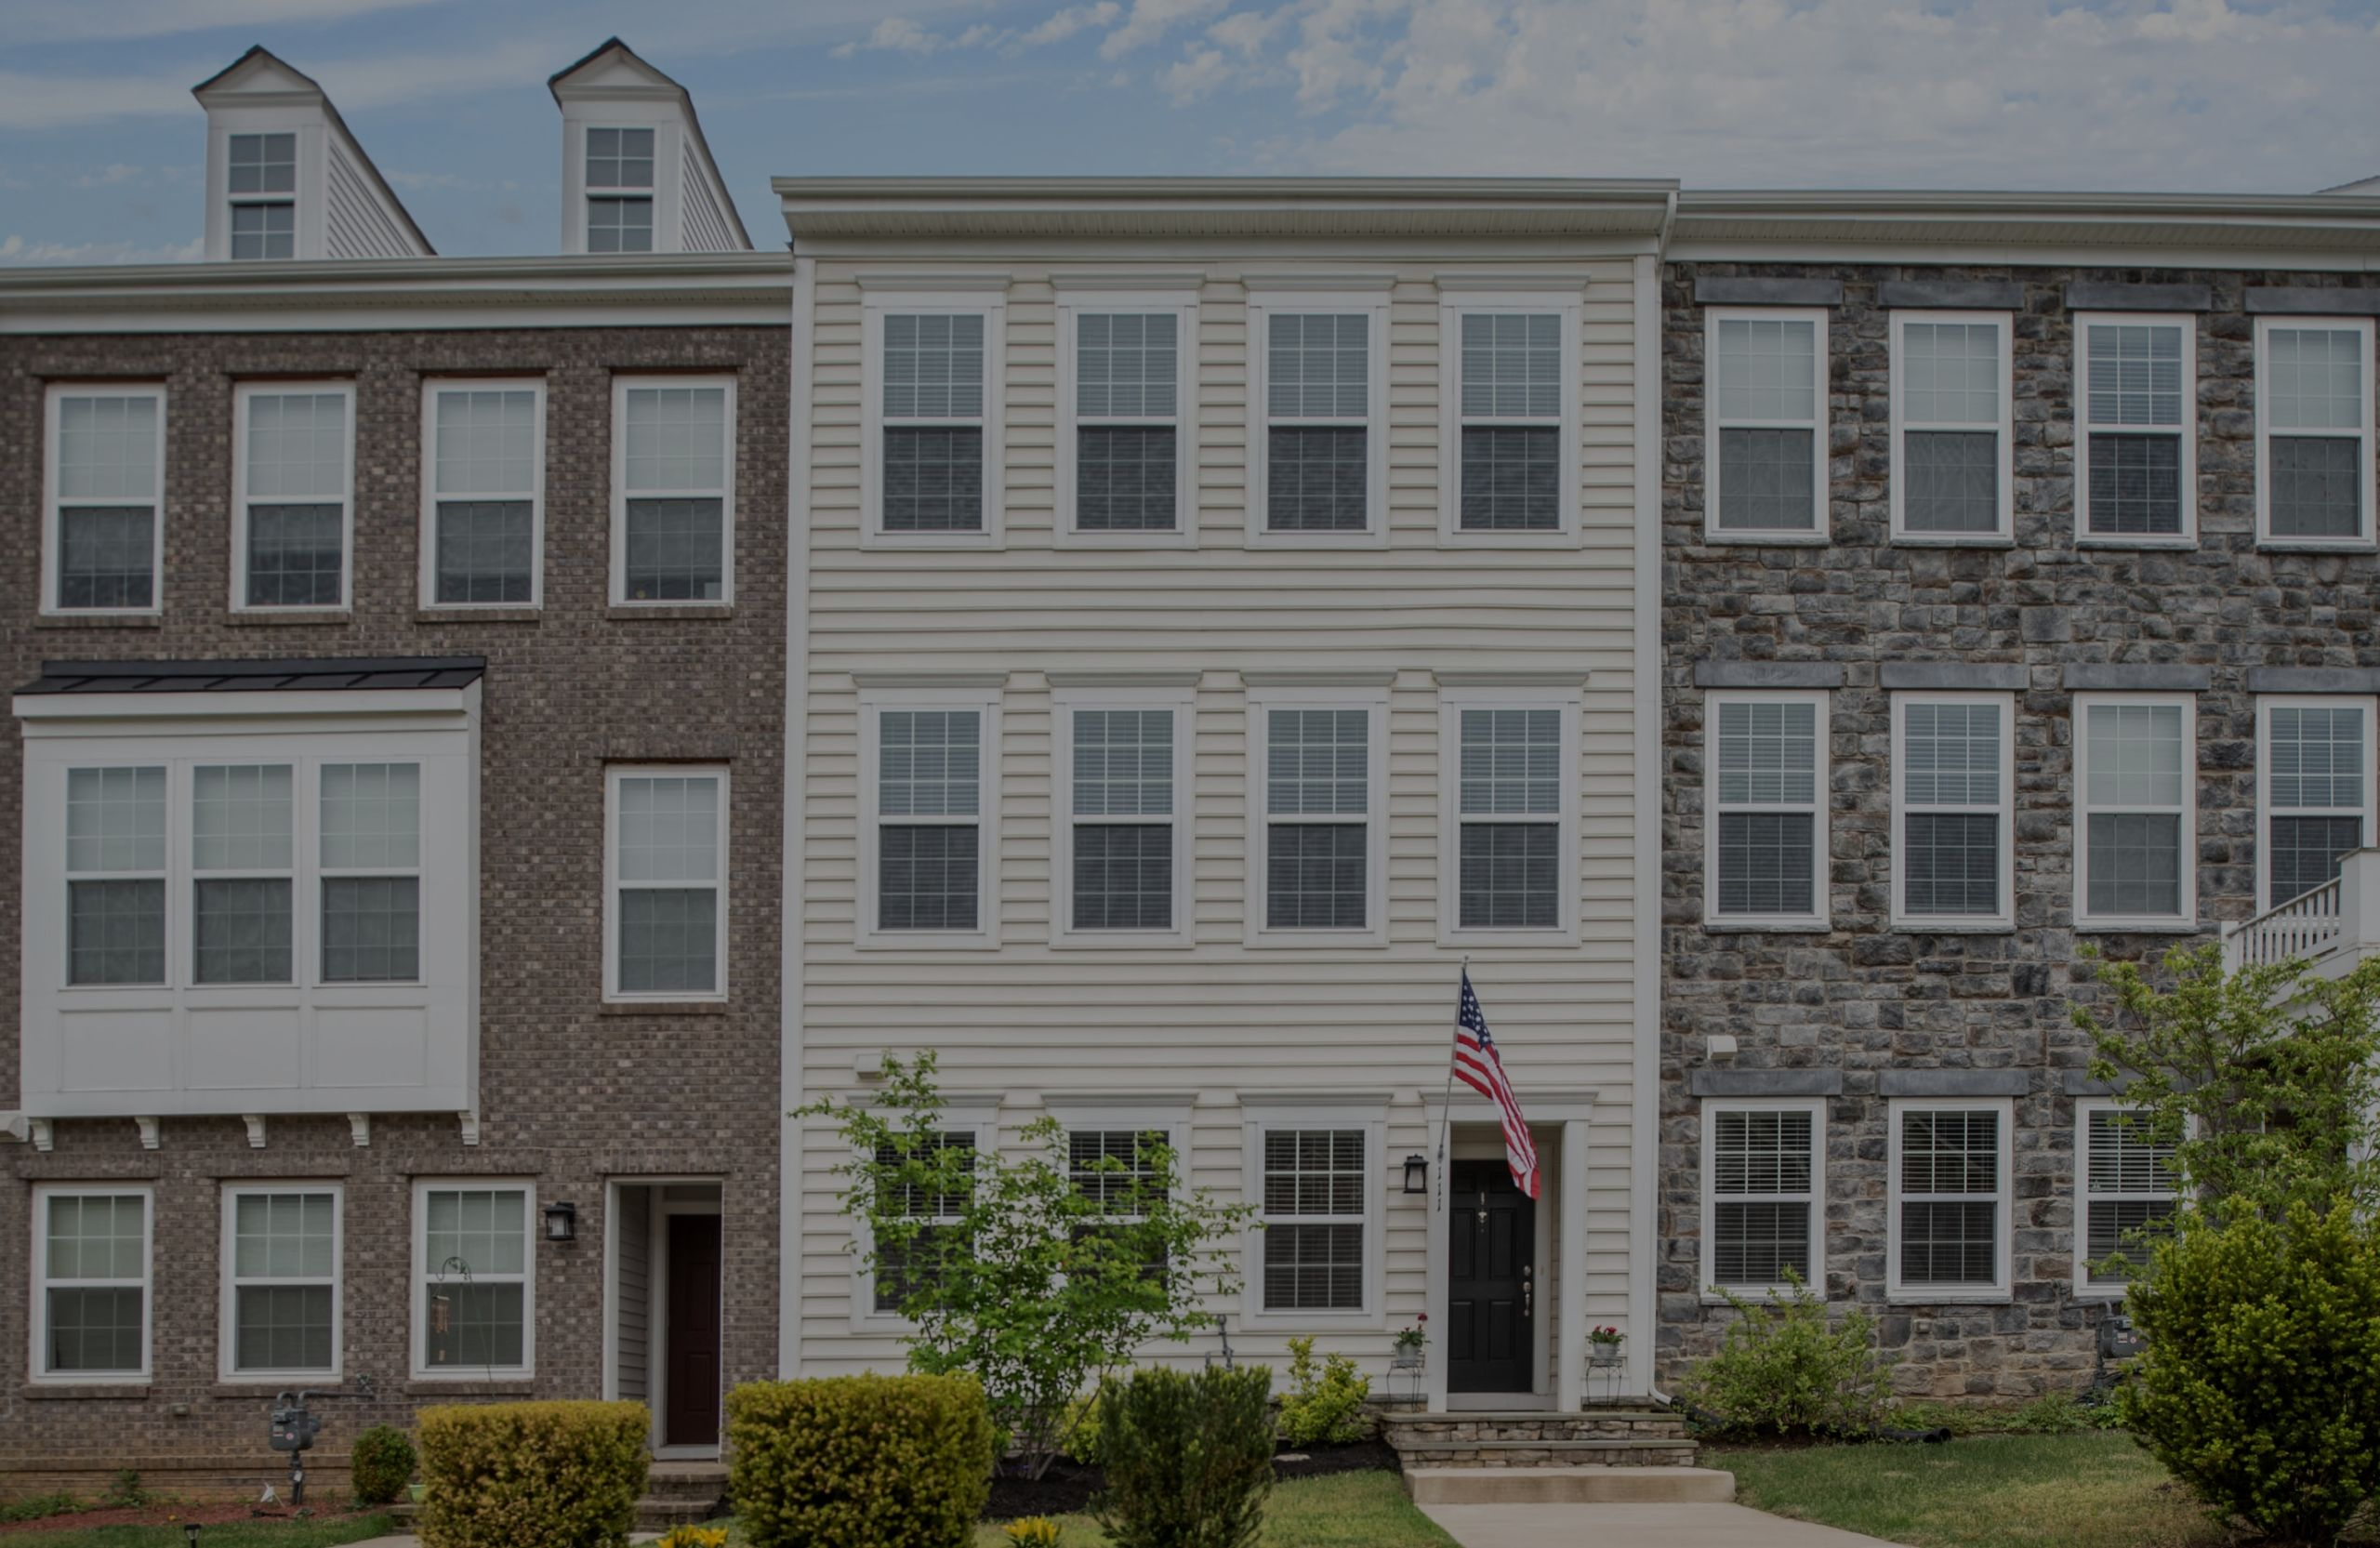 Stunning Garage Townhome in Sought After Embrey Mill Community!